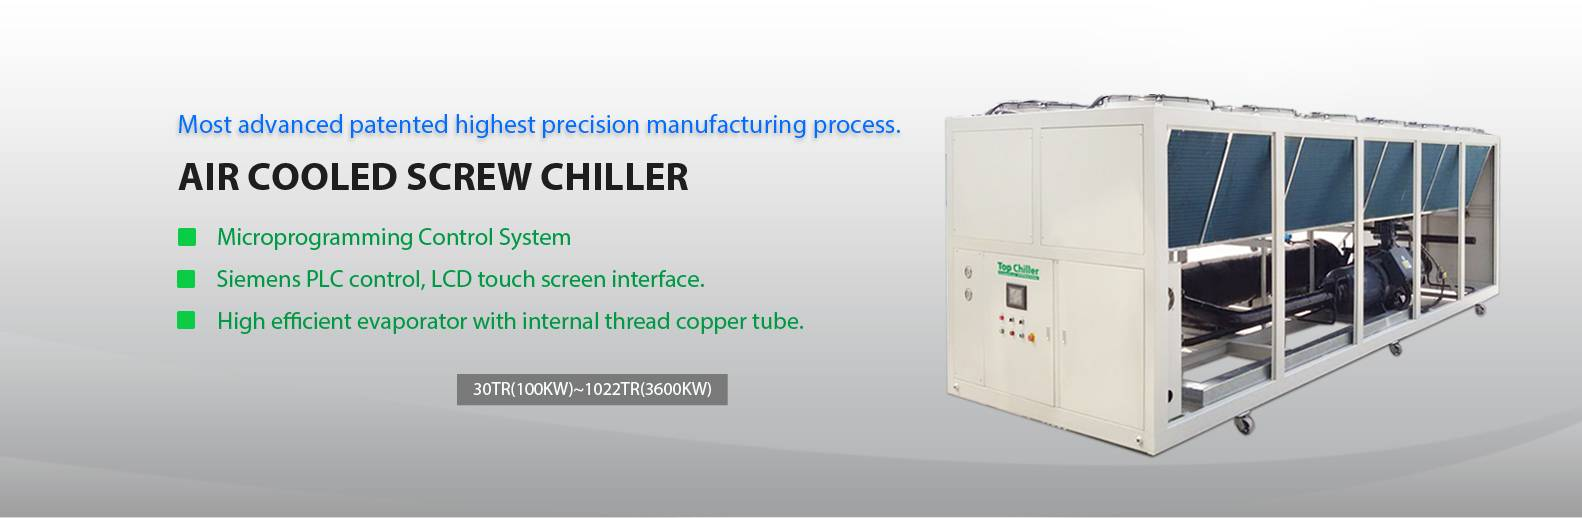 mini chiller,oil chiller,MRI chiller,mould temperature controller,air chiller,water chiller,industrial chiller,air cooled chiller,water cooled chiller.,industrial water chiller,screw water chiller